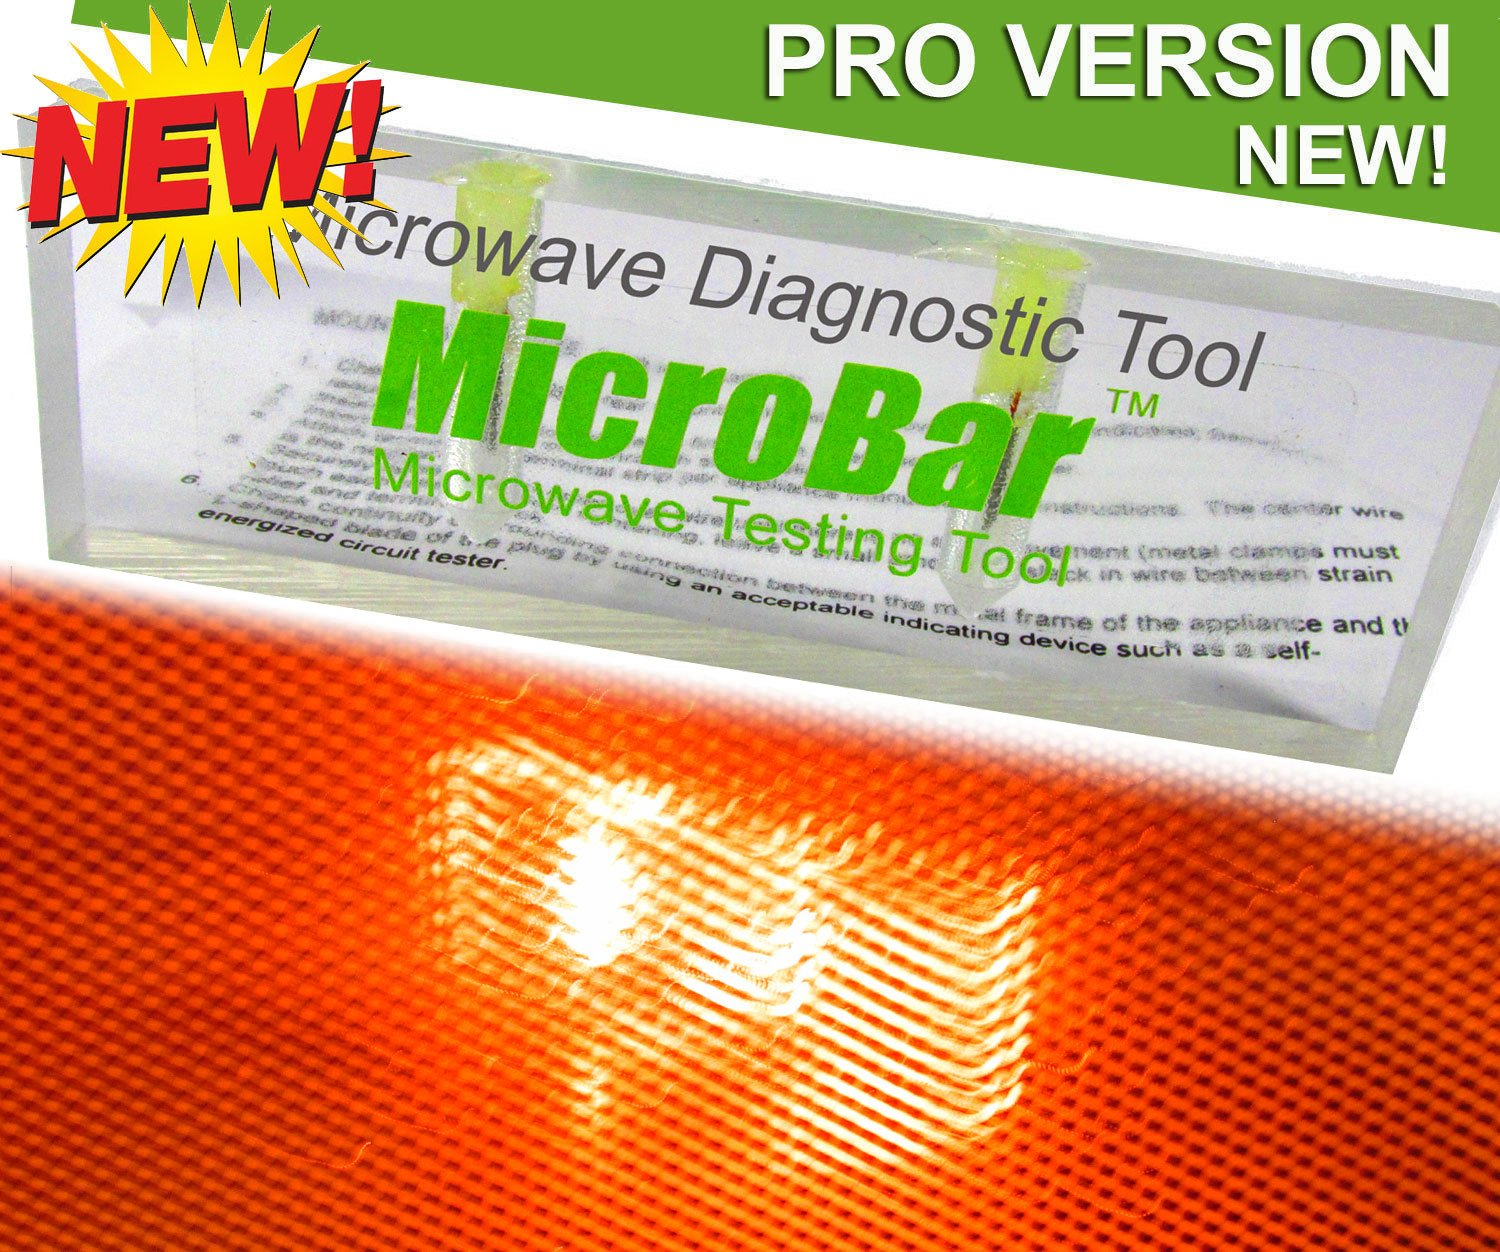 MICROBAR 2018 4750 Home Inspector Inspection Pro Microwave Tester Diagnostic Tool